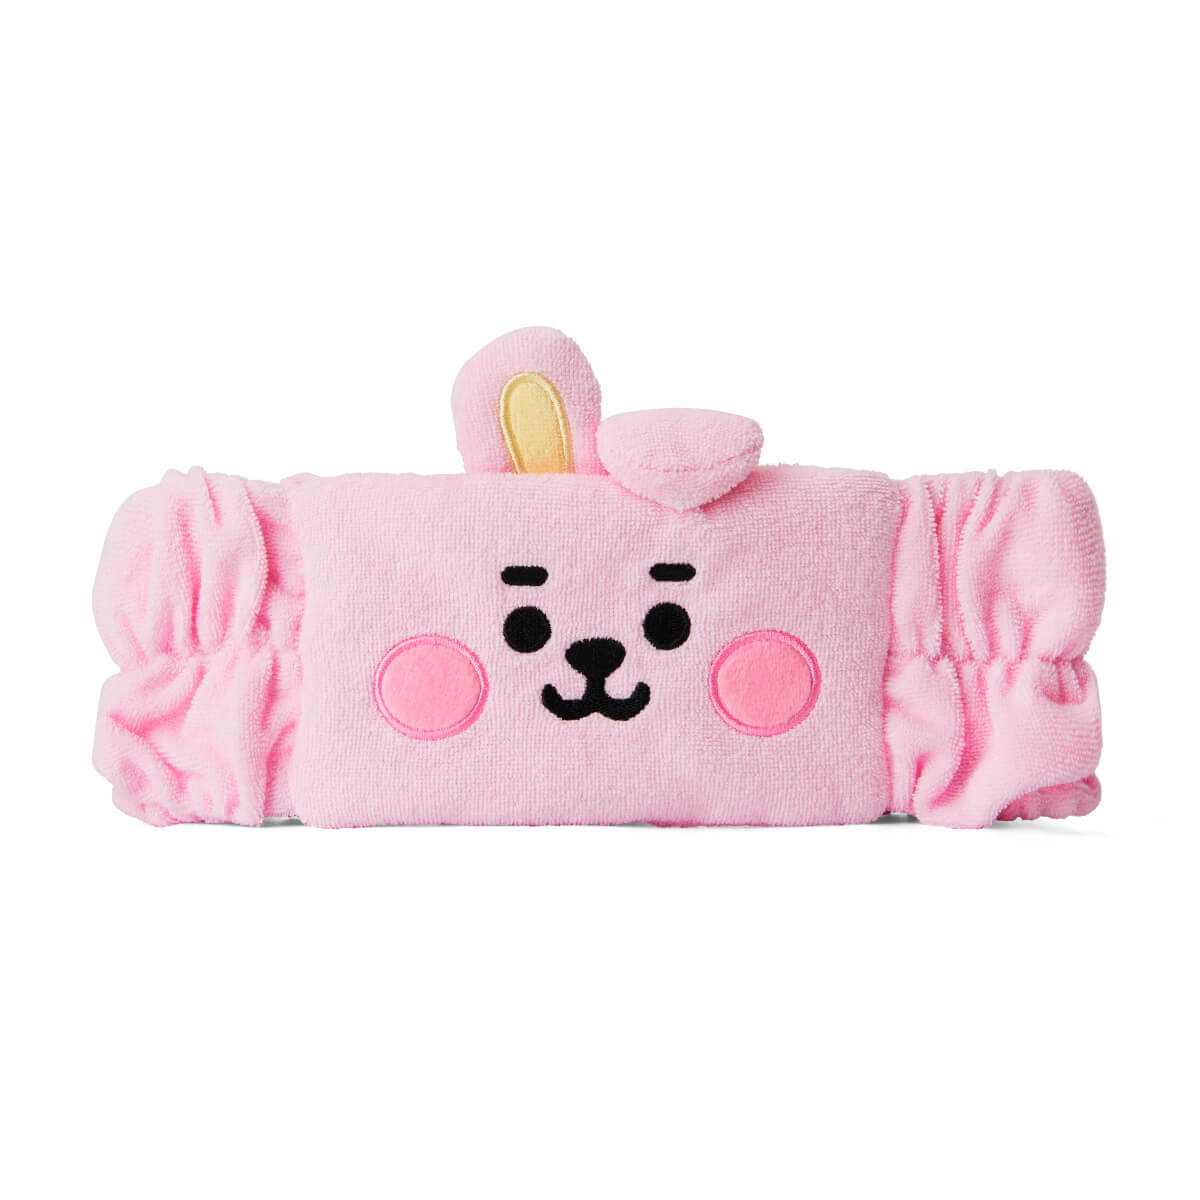 BT21 COOKY BABY Microfiber Hair Band